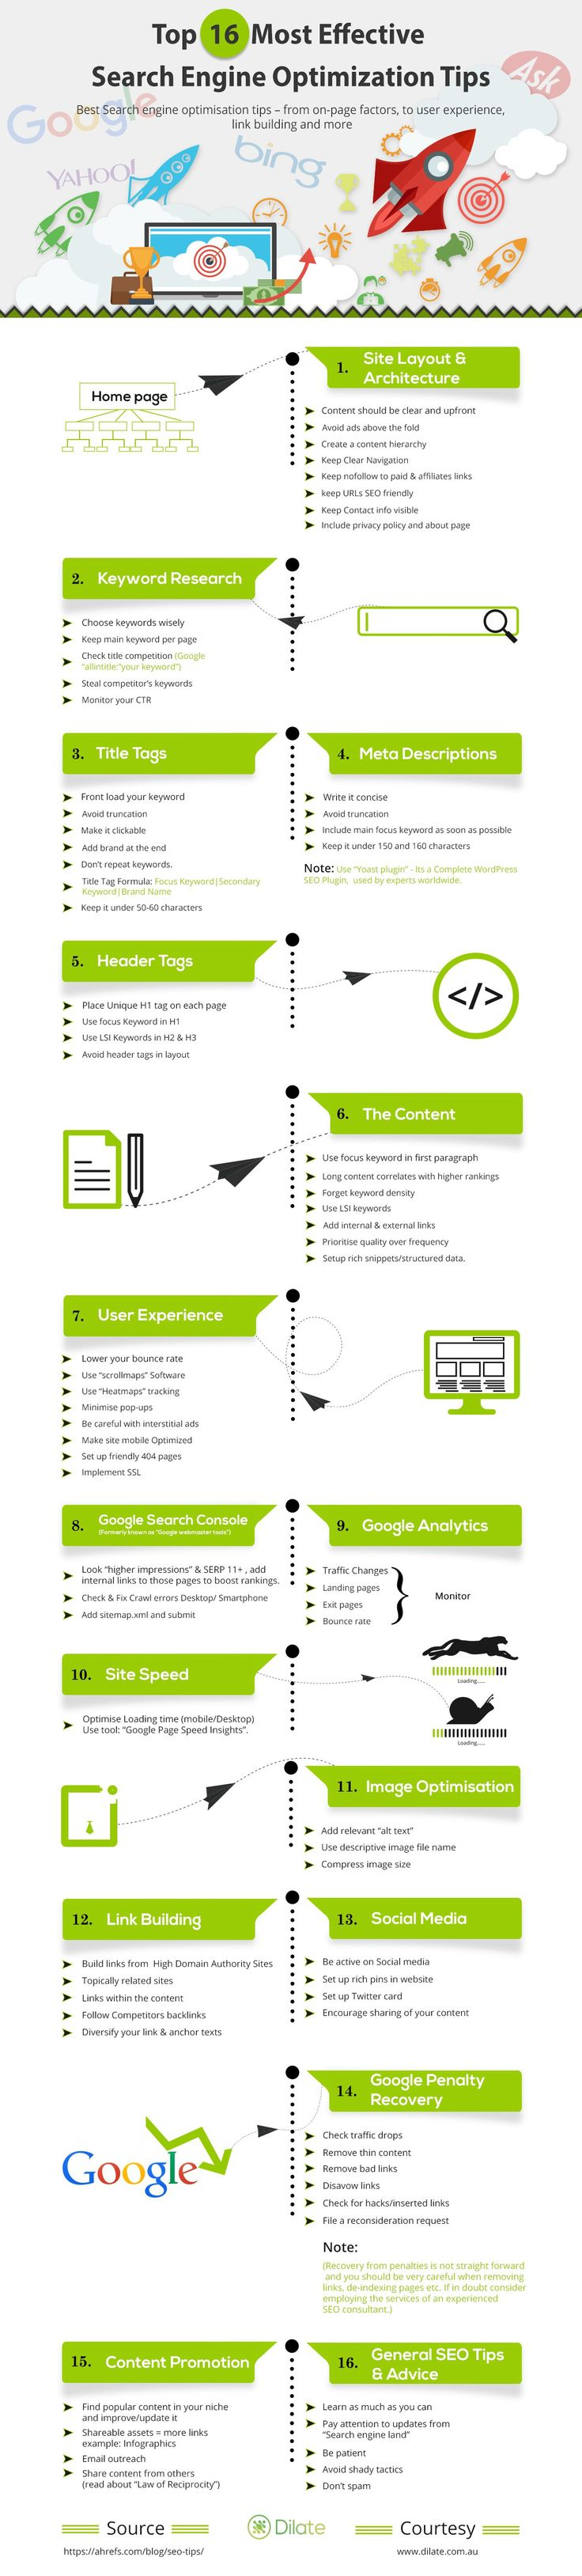 Top 16 Most Effective Search Engine Optimization Tips 2016 infographic, a guide for SEO tools Get your business found by search engines From MostlyBlogging.com